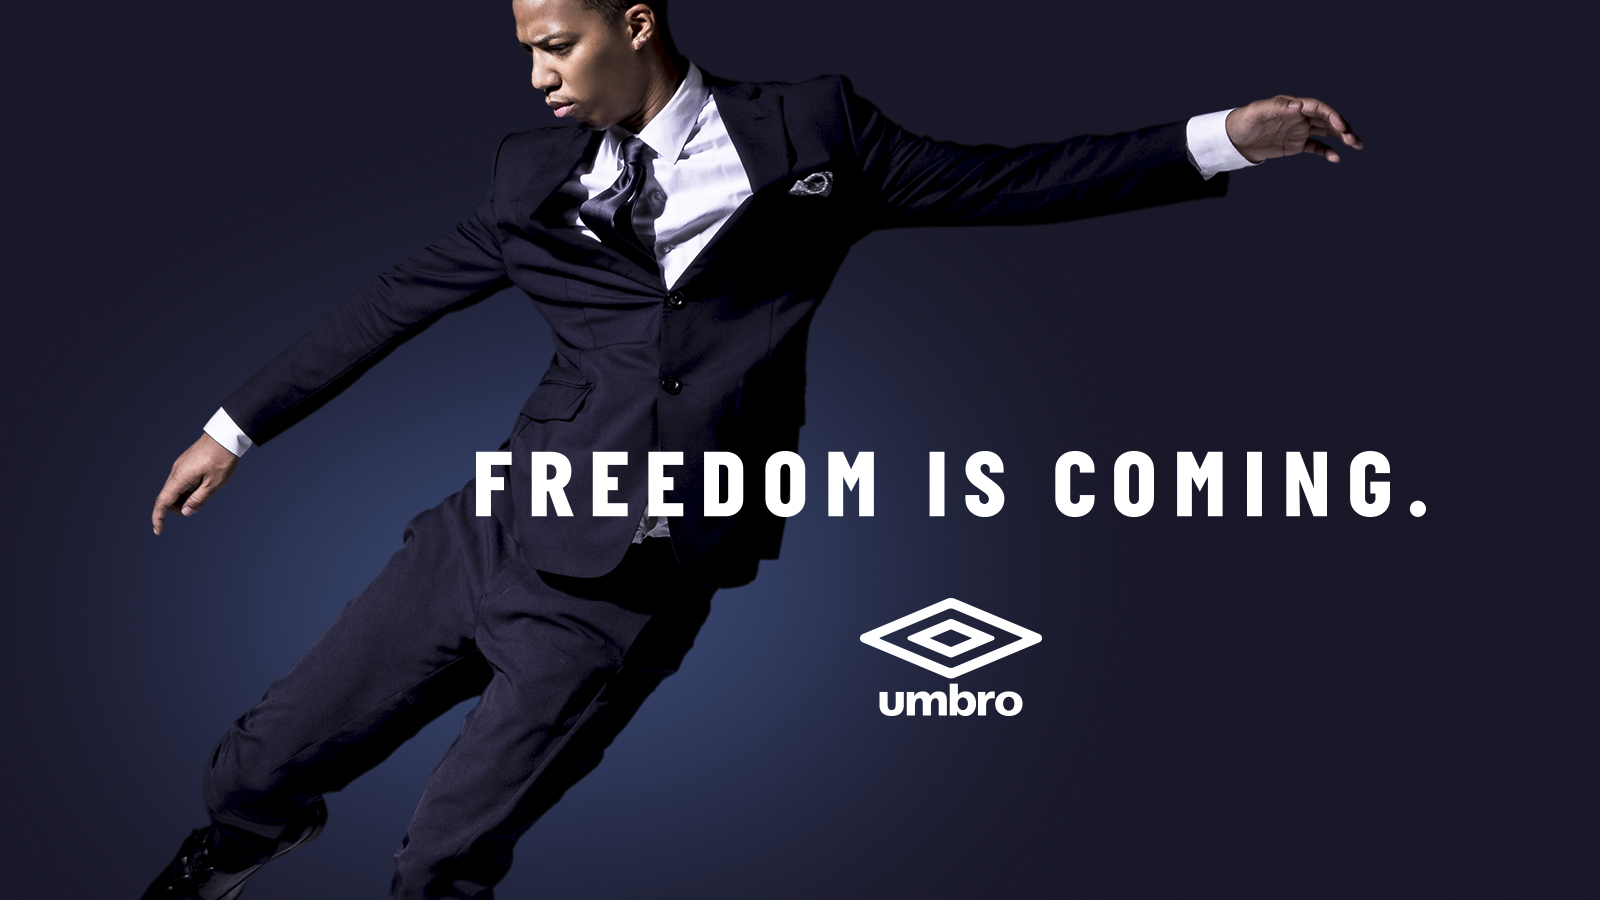 Umditional Pants / キービジュアル(UMBRO)